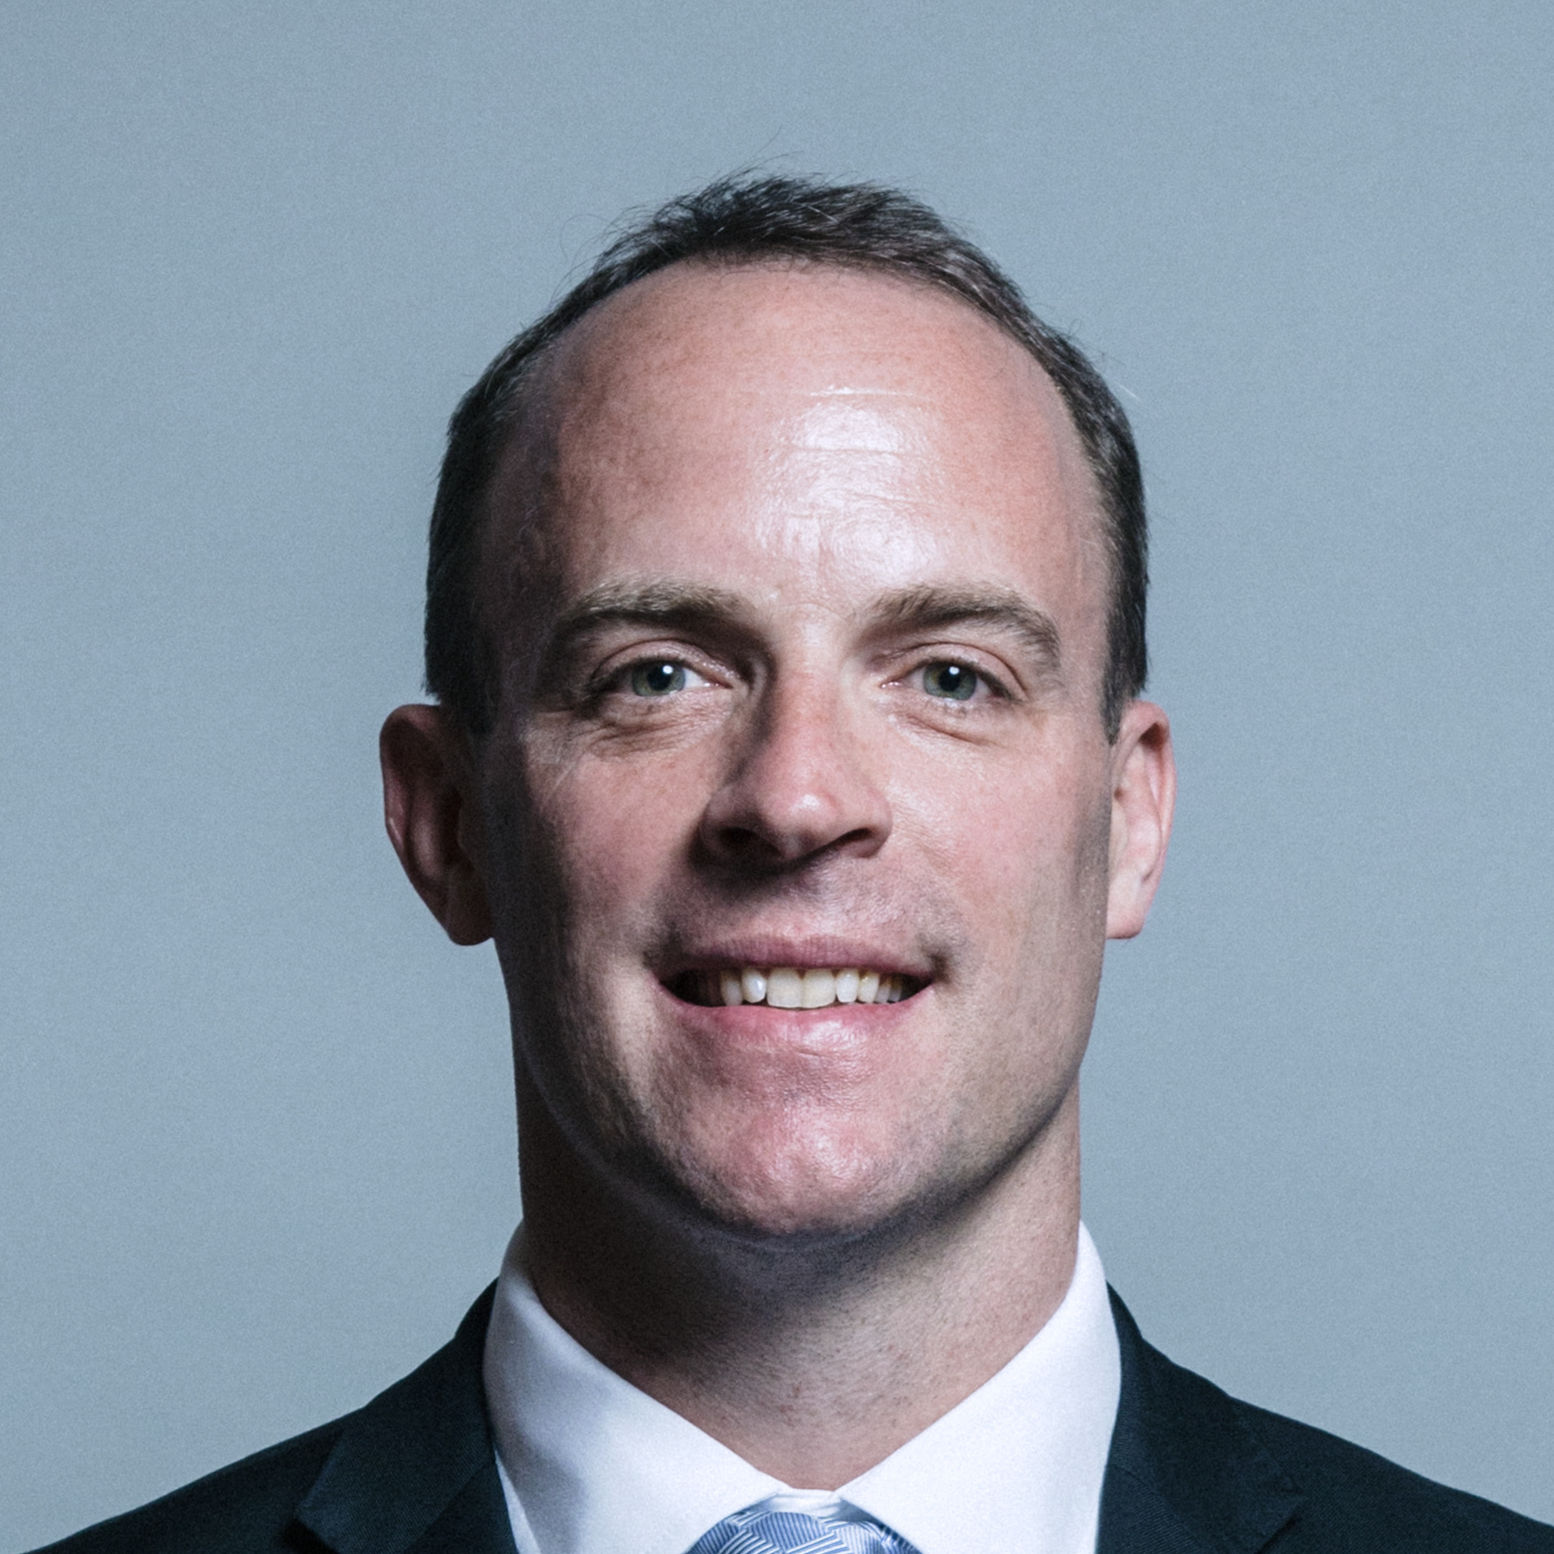 Dominic Raab Portrait